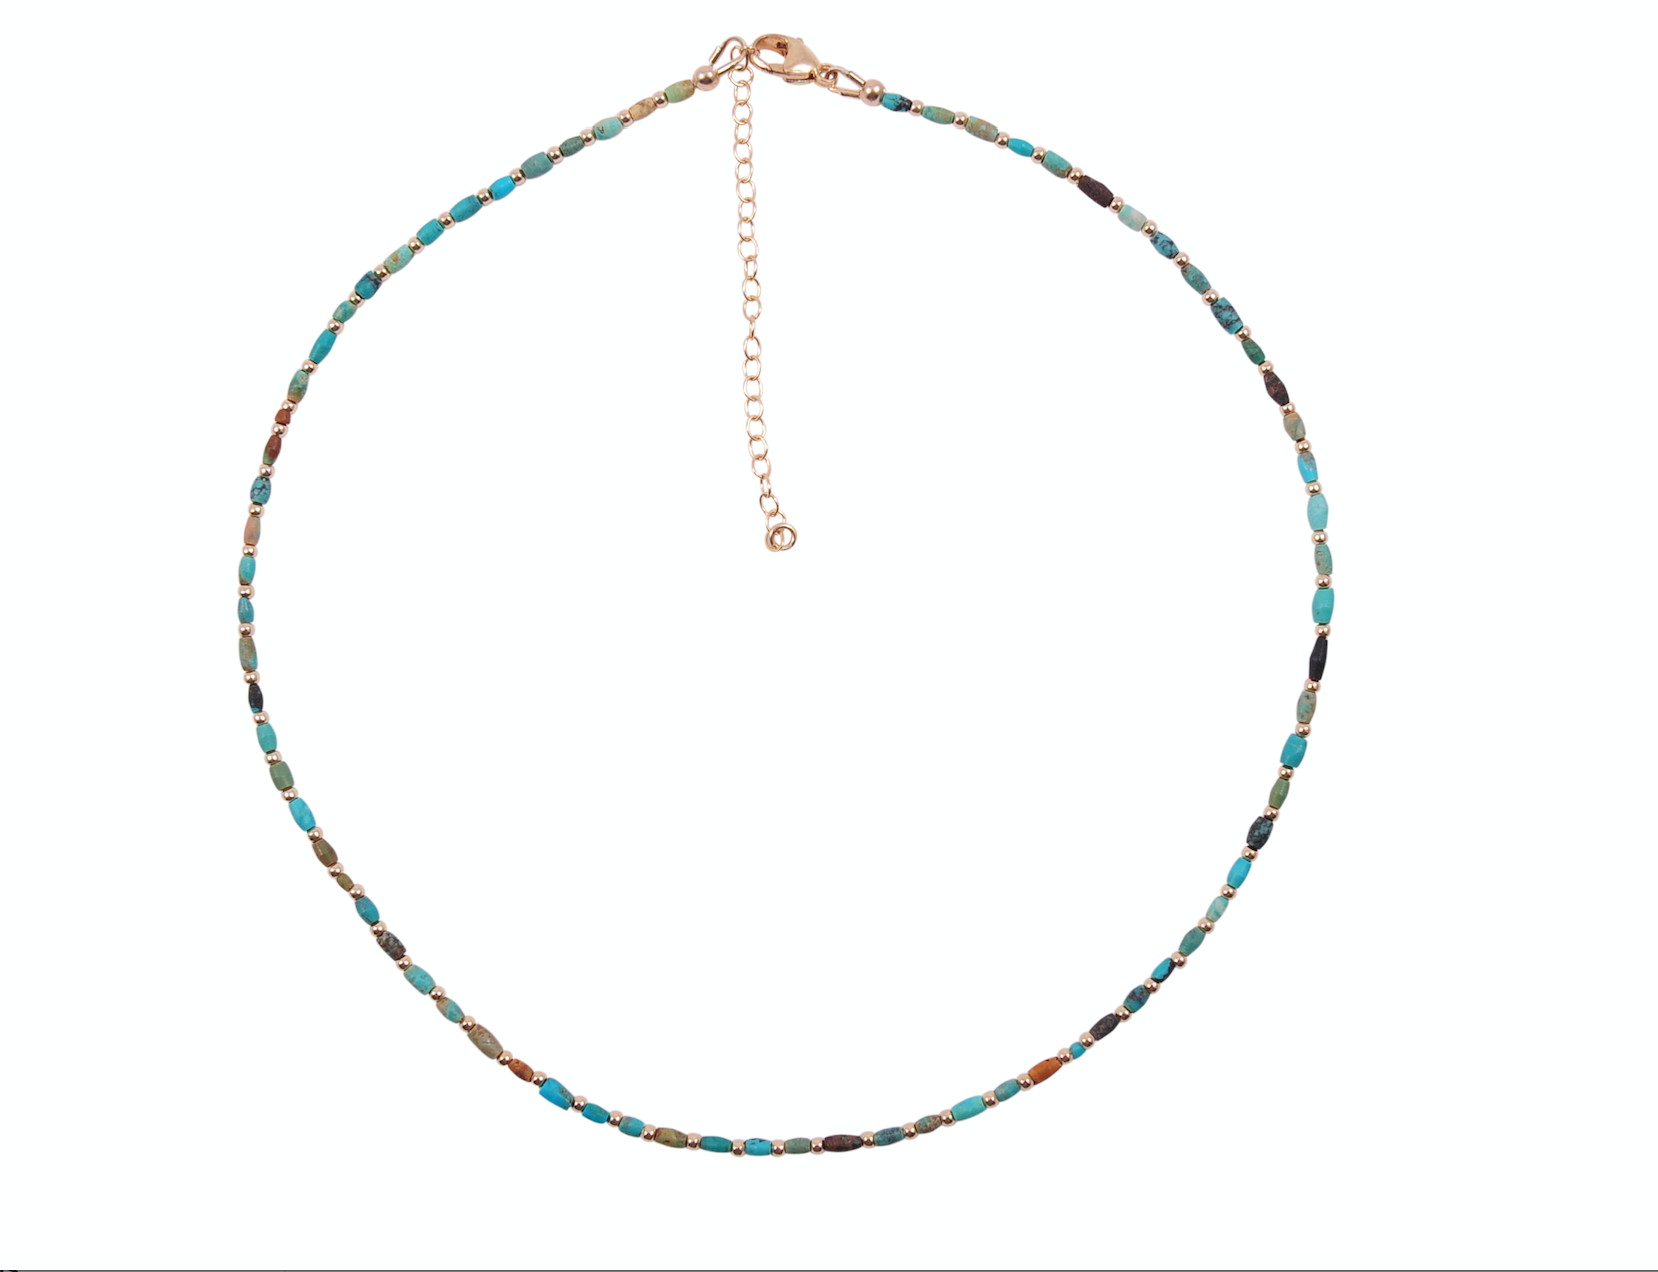 GEMSTONE STACKER NECKLACES